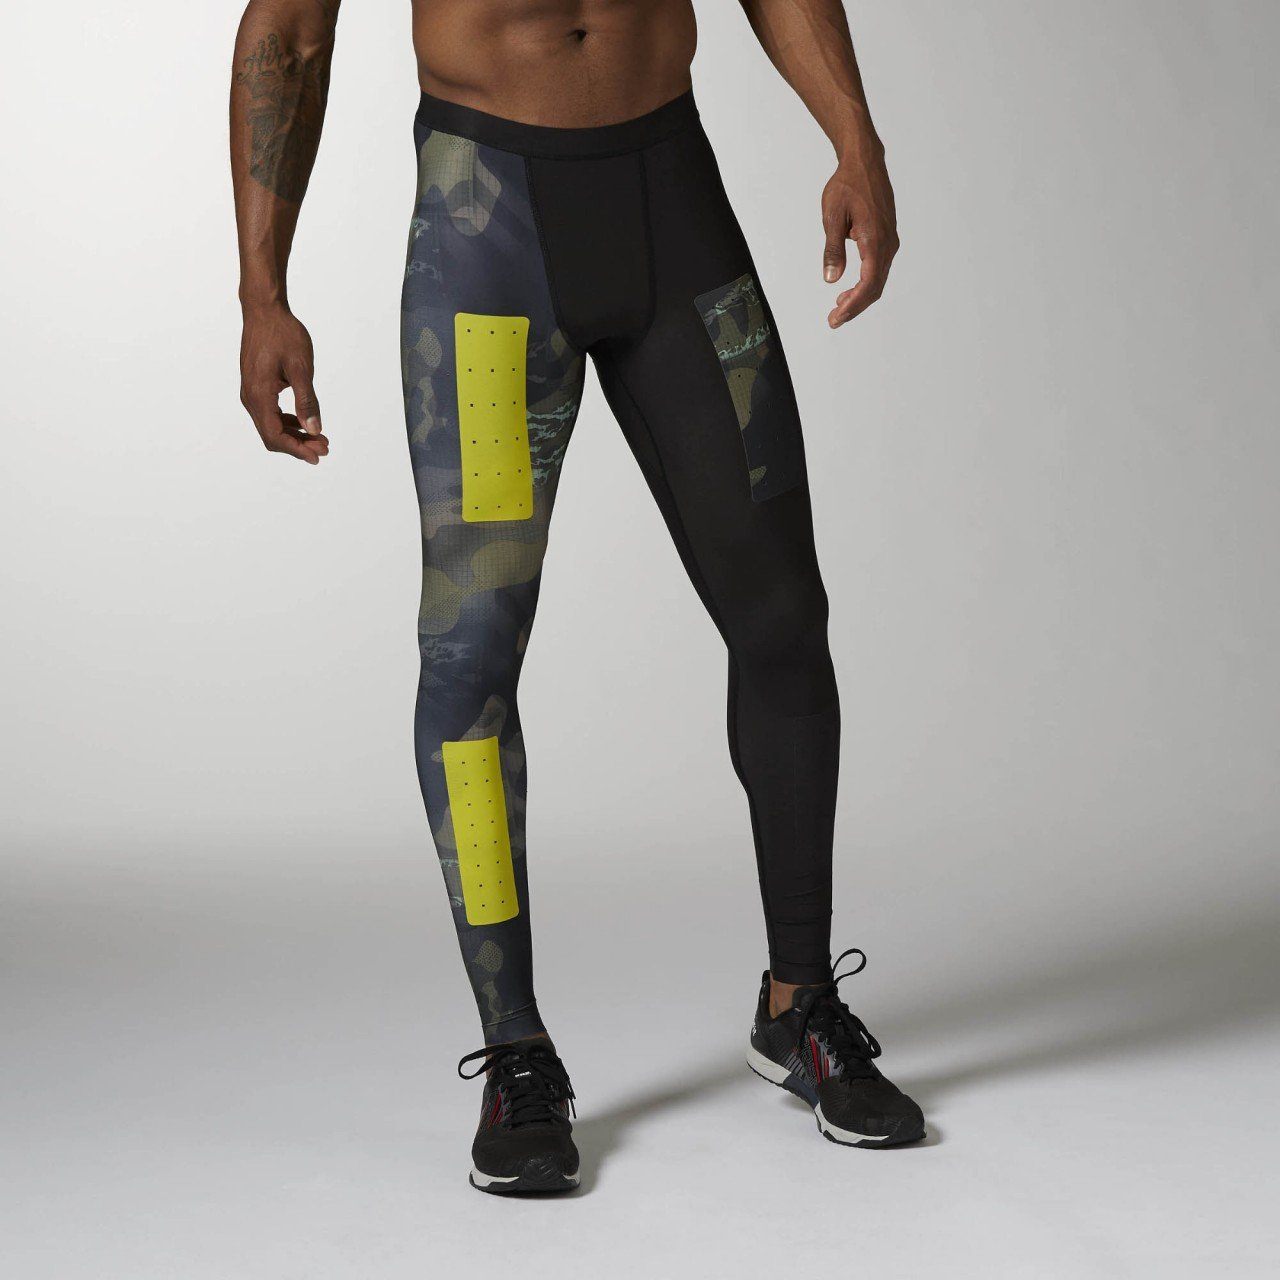 RCF Reebook Comp Tight-Calzamaglia da uomo Reebok RCF Comp Tight